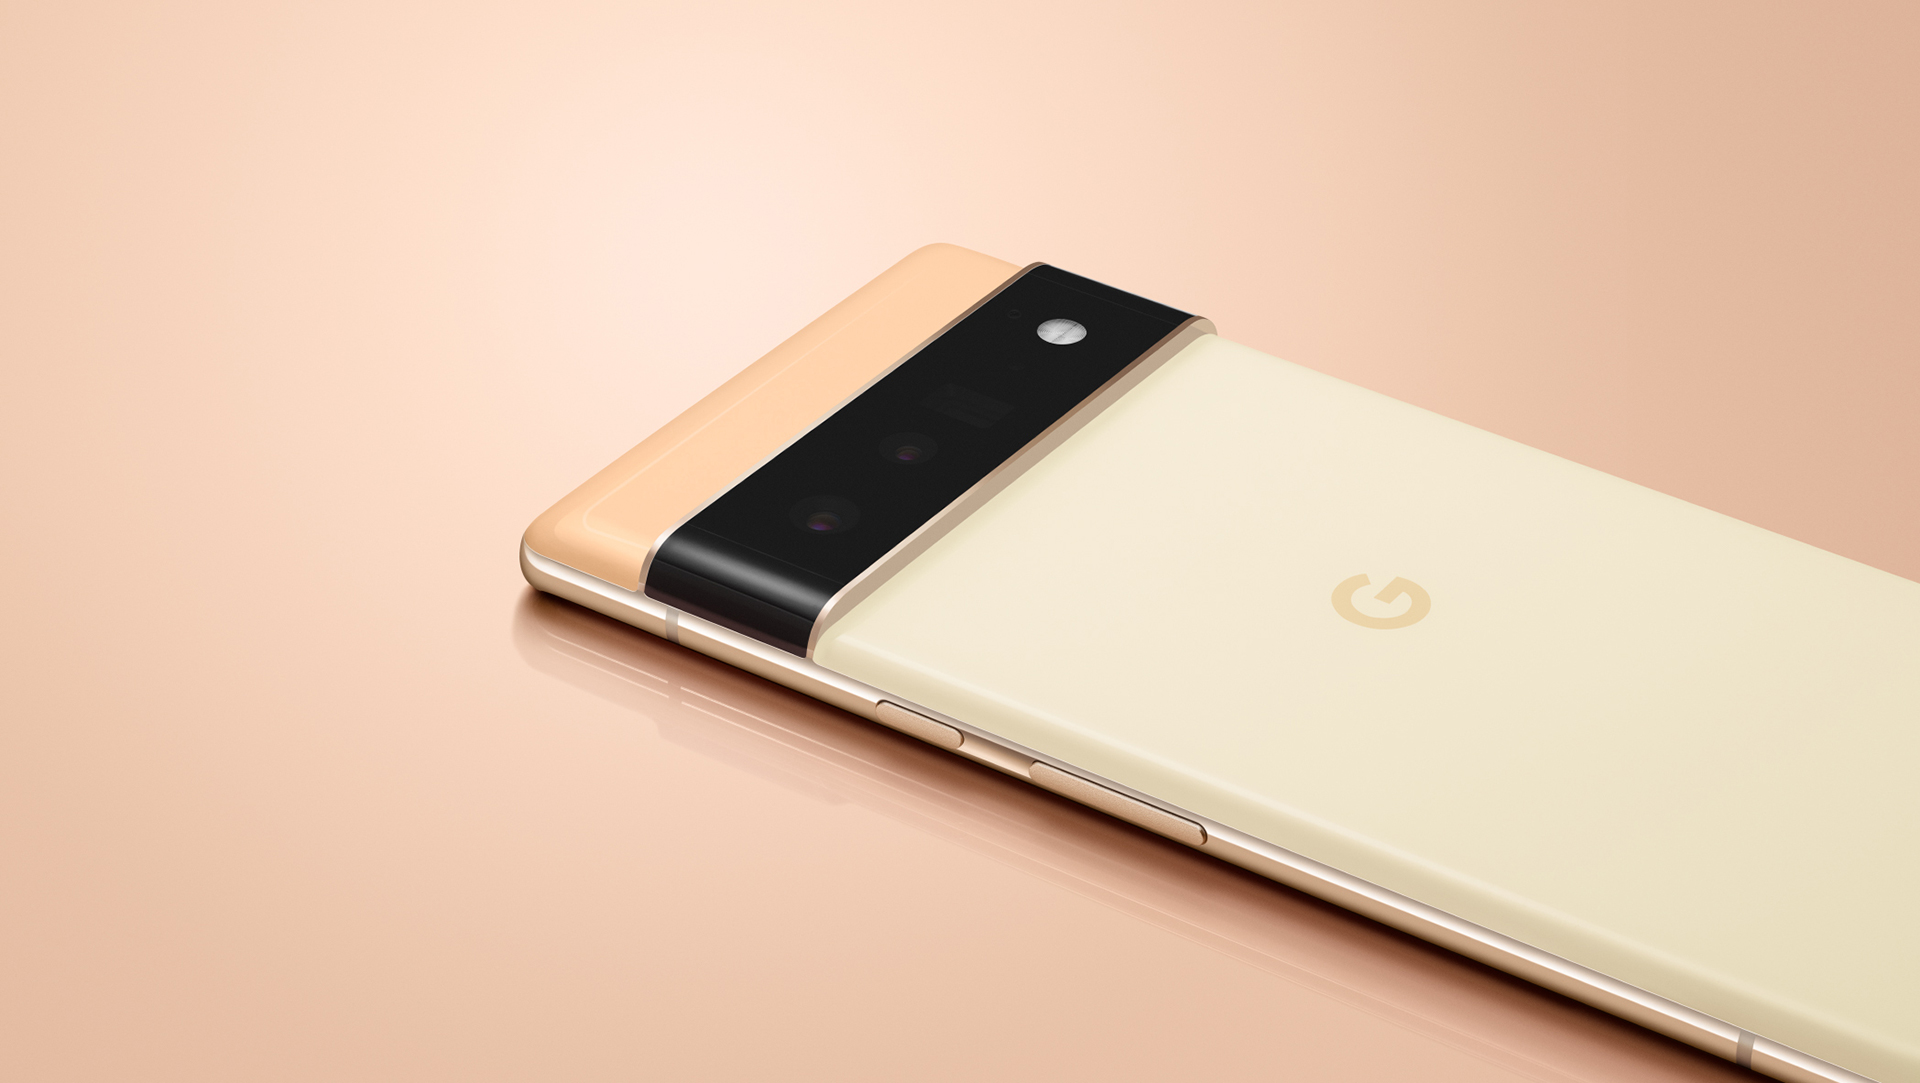 Google Pixel 6 in peach at an angle